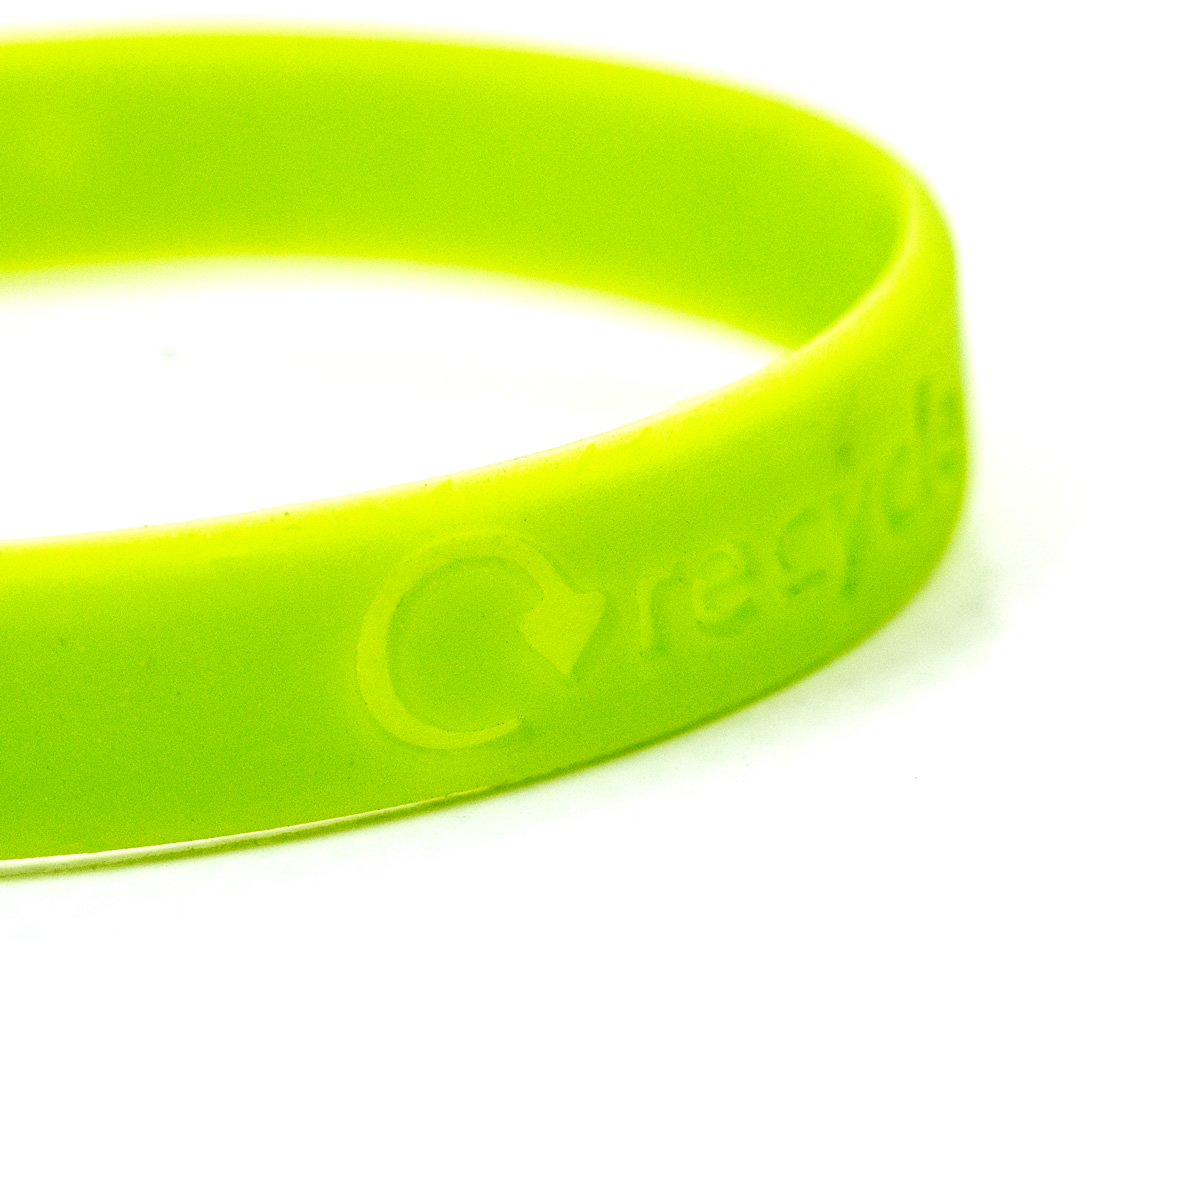 custom Wristbands, personalised Wristbands, multicoloured Wristbands, recycled wristbands